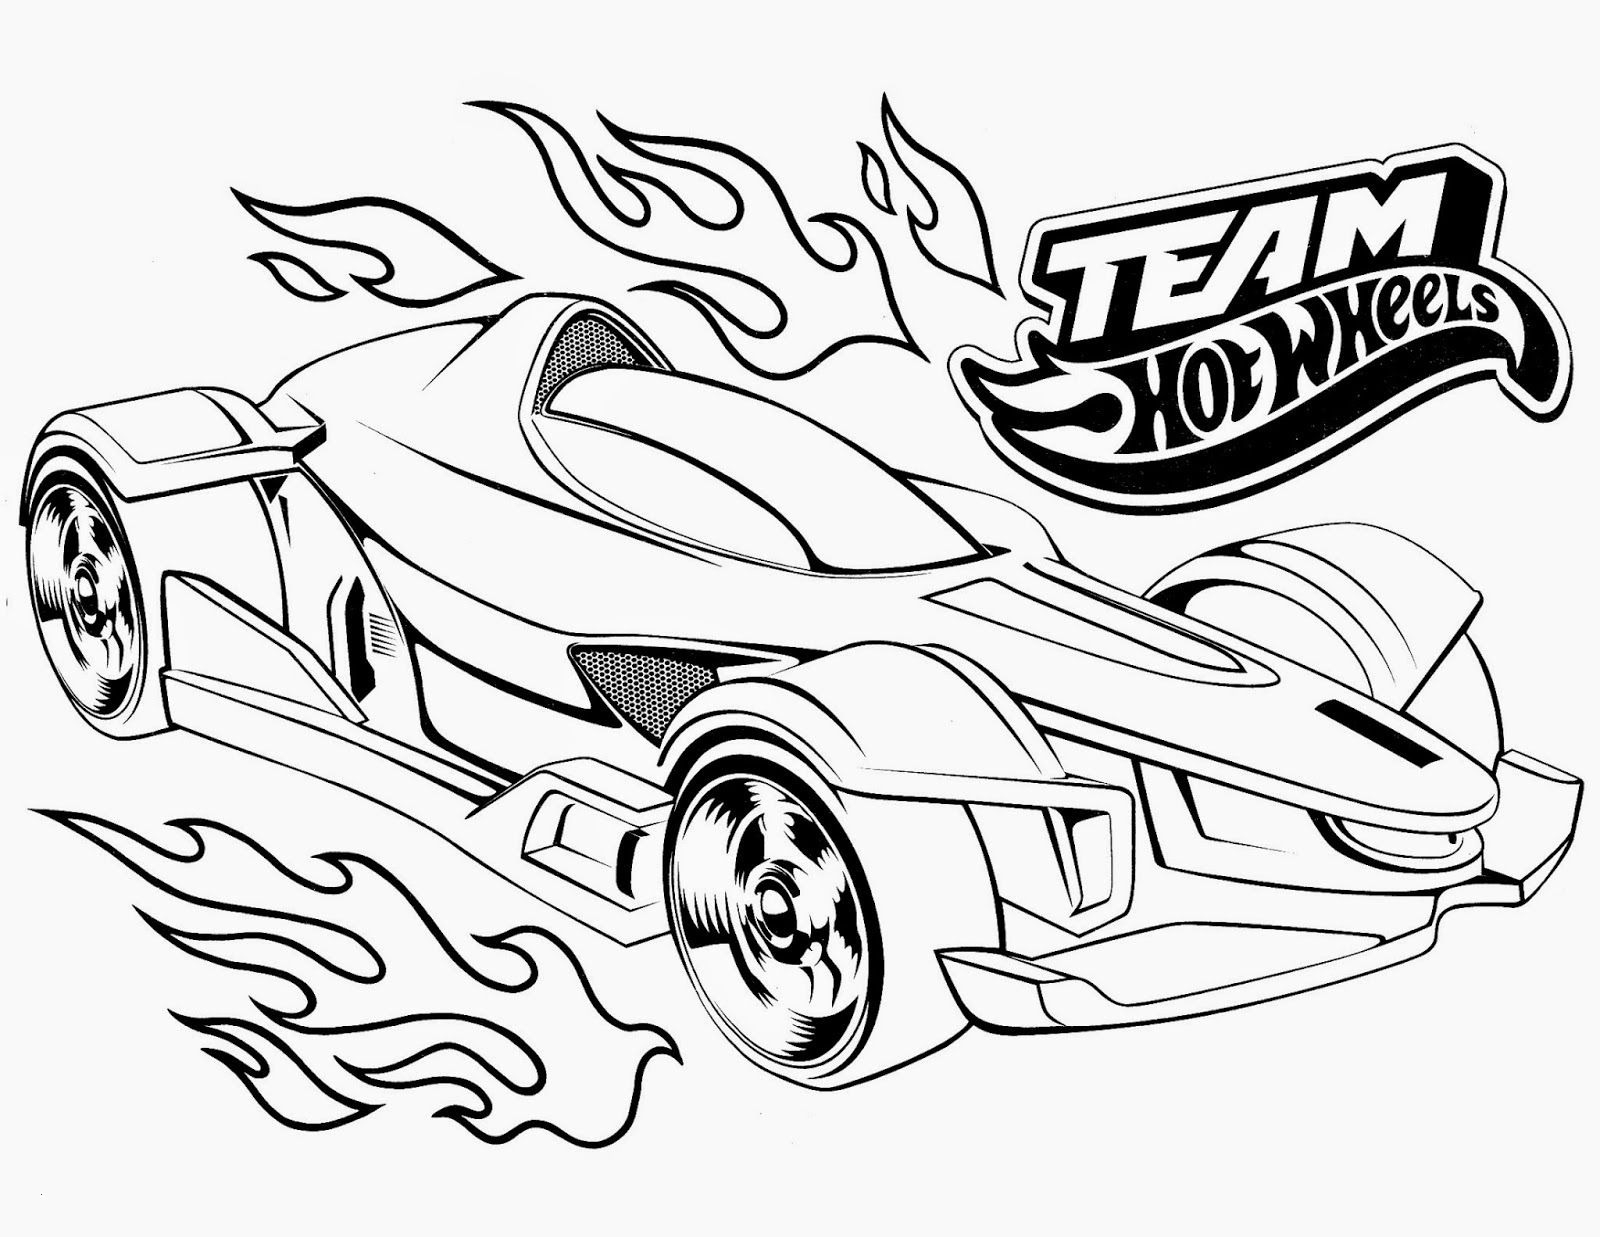 Hot Wheels Coloring Pages  to Print 2a - Free Download